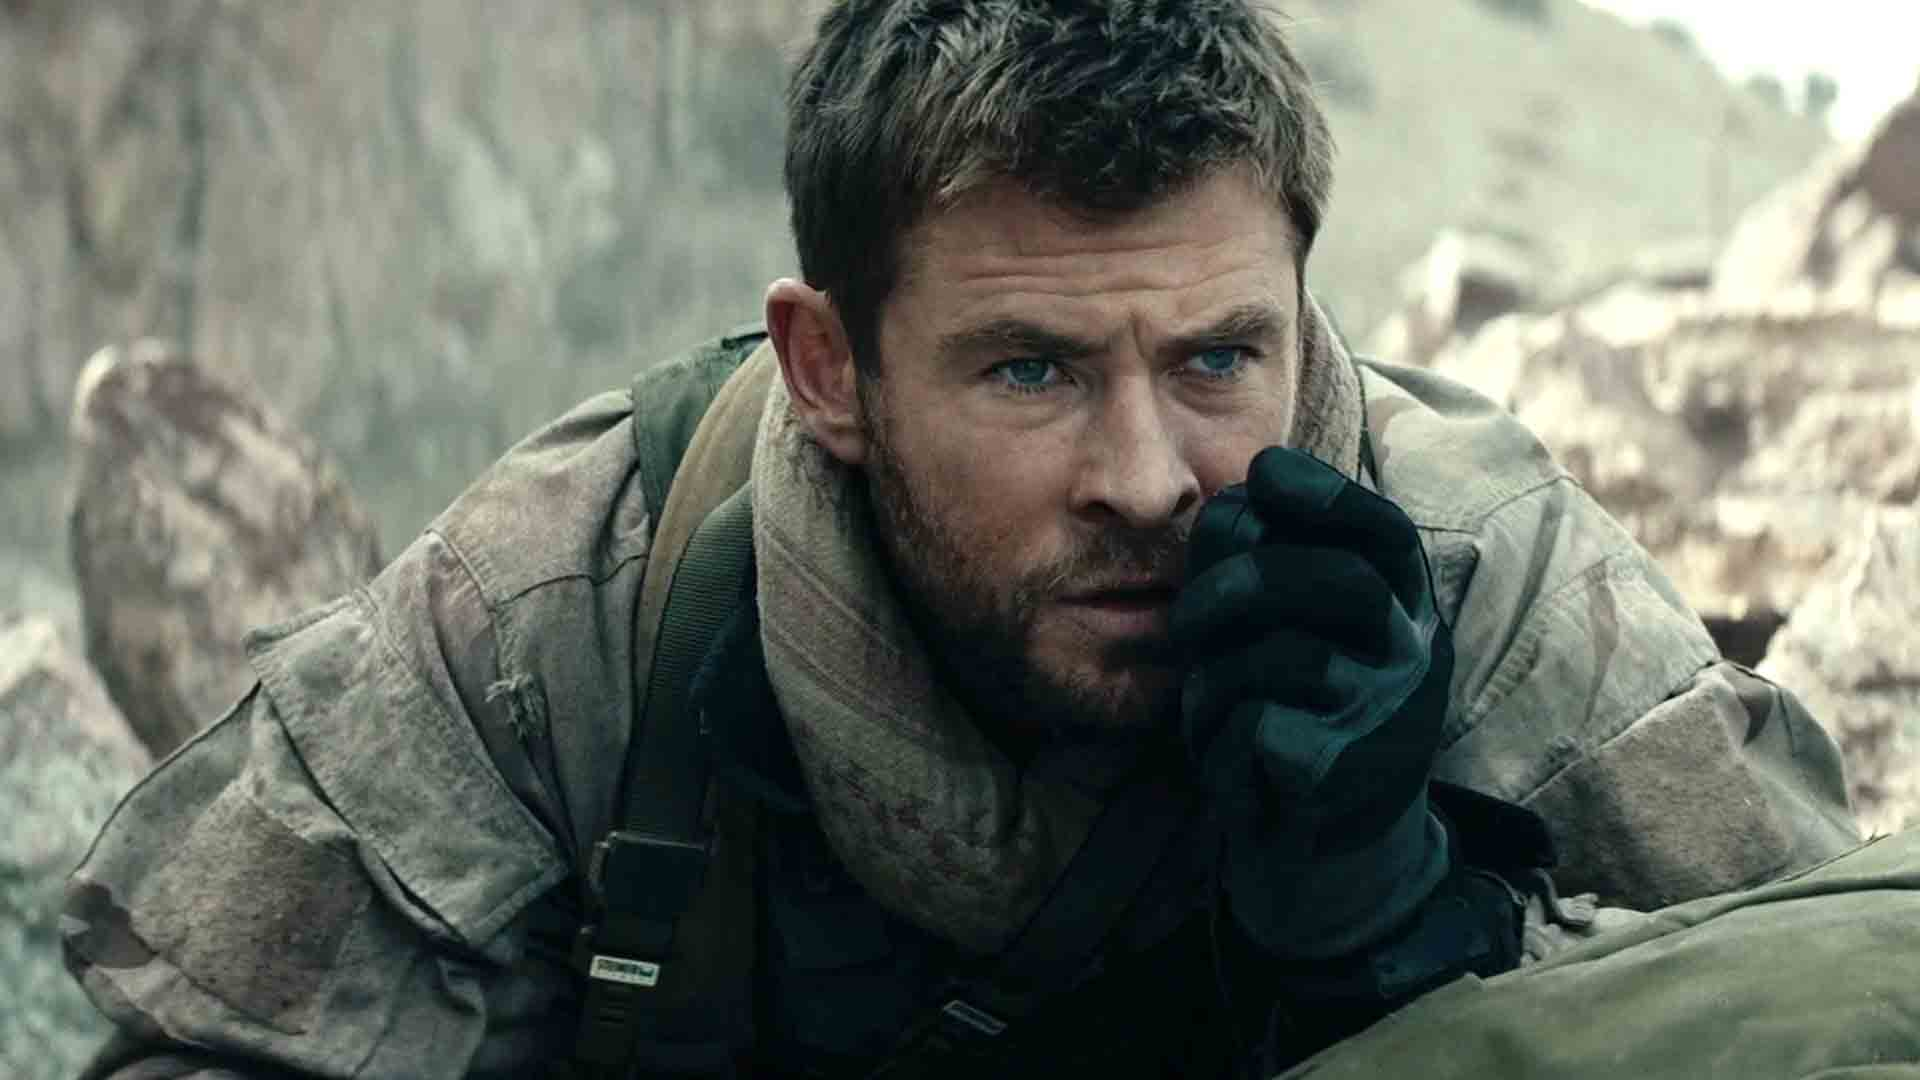 '12 Strong' is mediocre film that is too weak to be any good